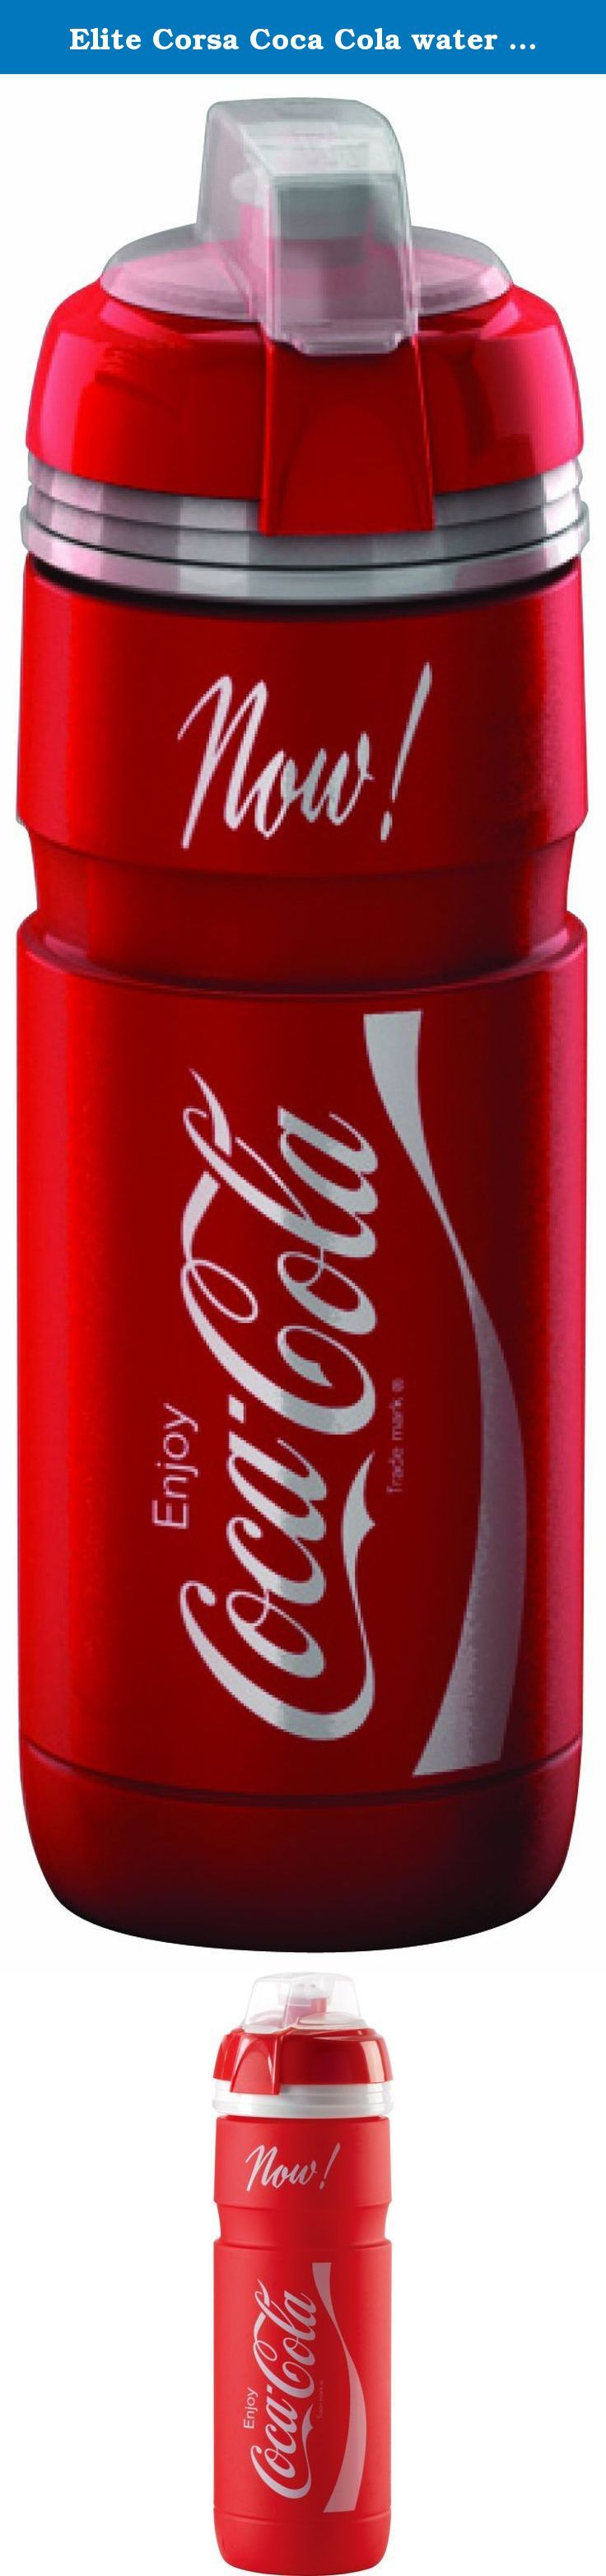 Elite Corsa Coca Cola water bottle plastic 750 ml red/white. Type/Intended use: drink bottle for adults Material: plastic Fastener: press lock Size: Volume: 750 ml .